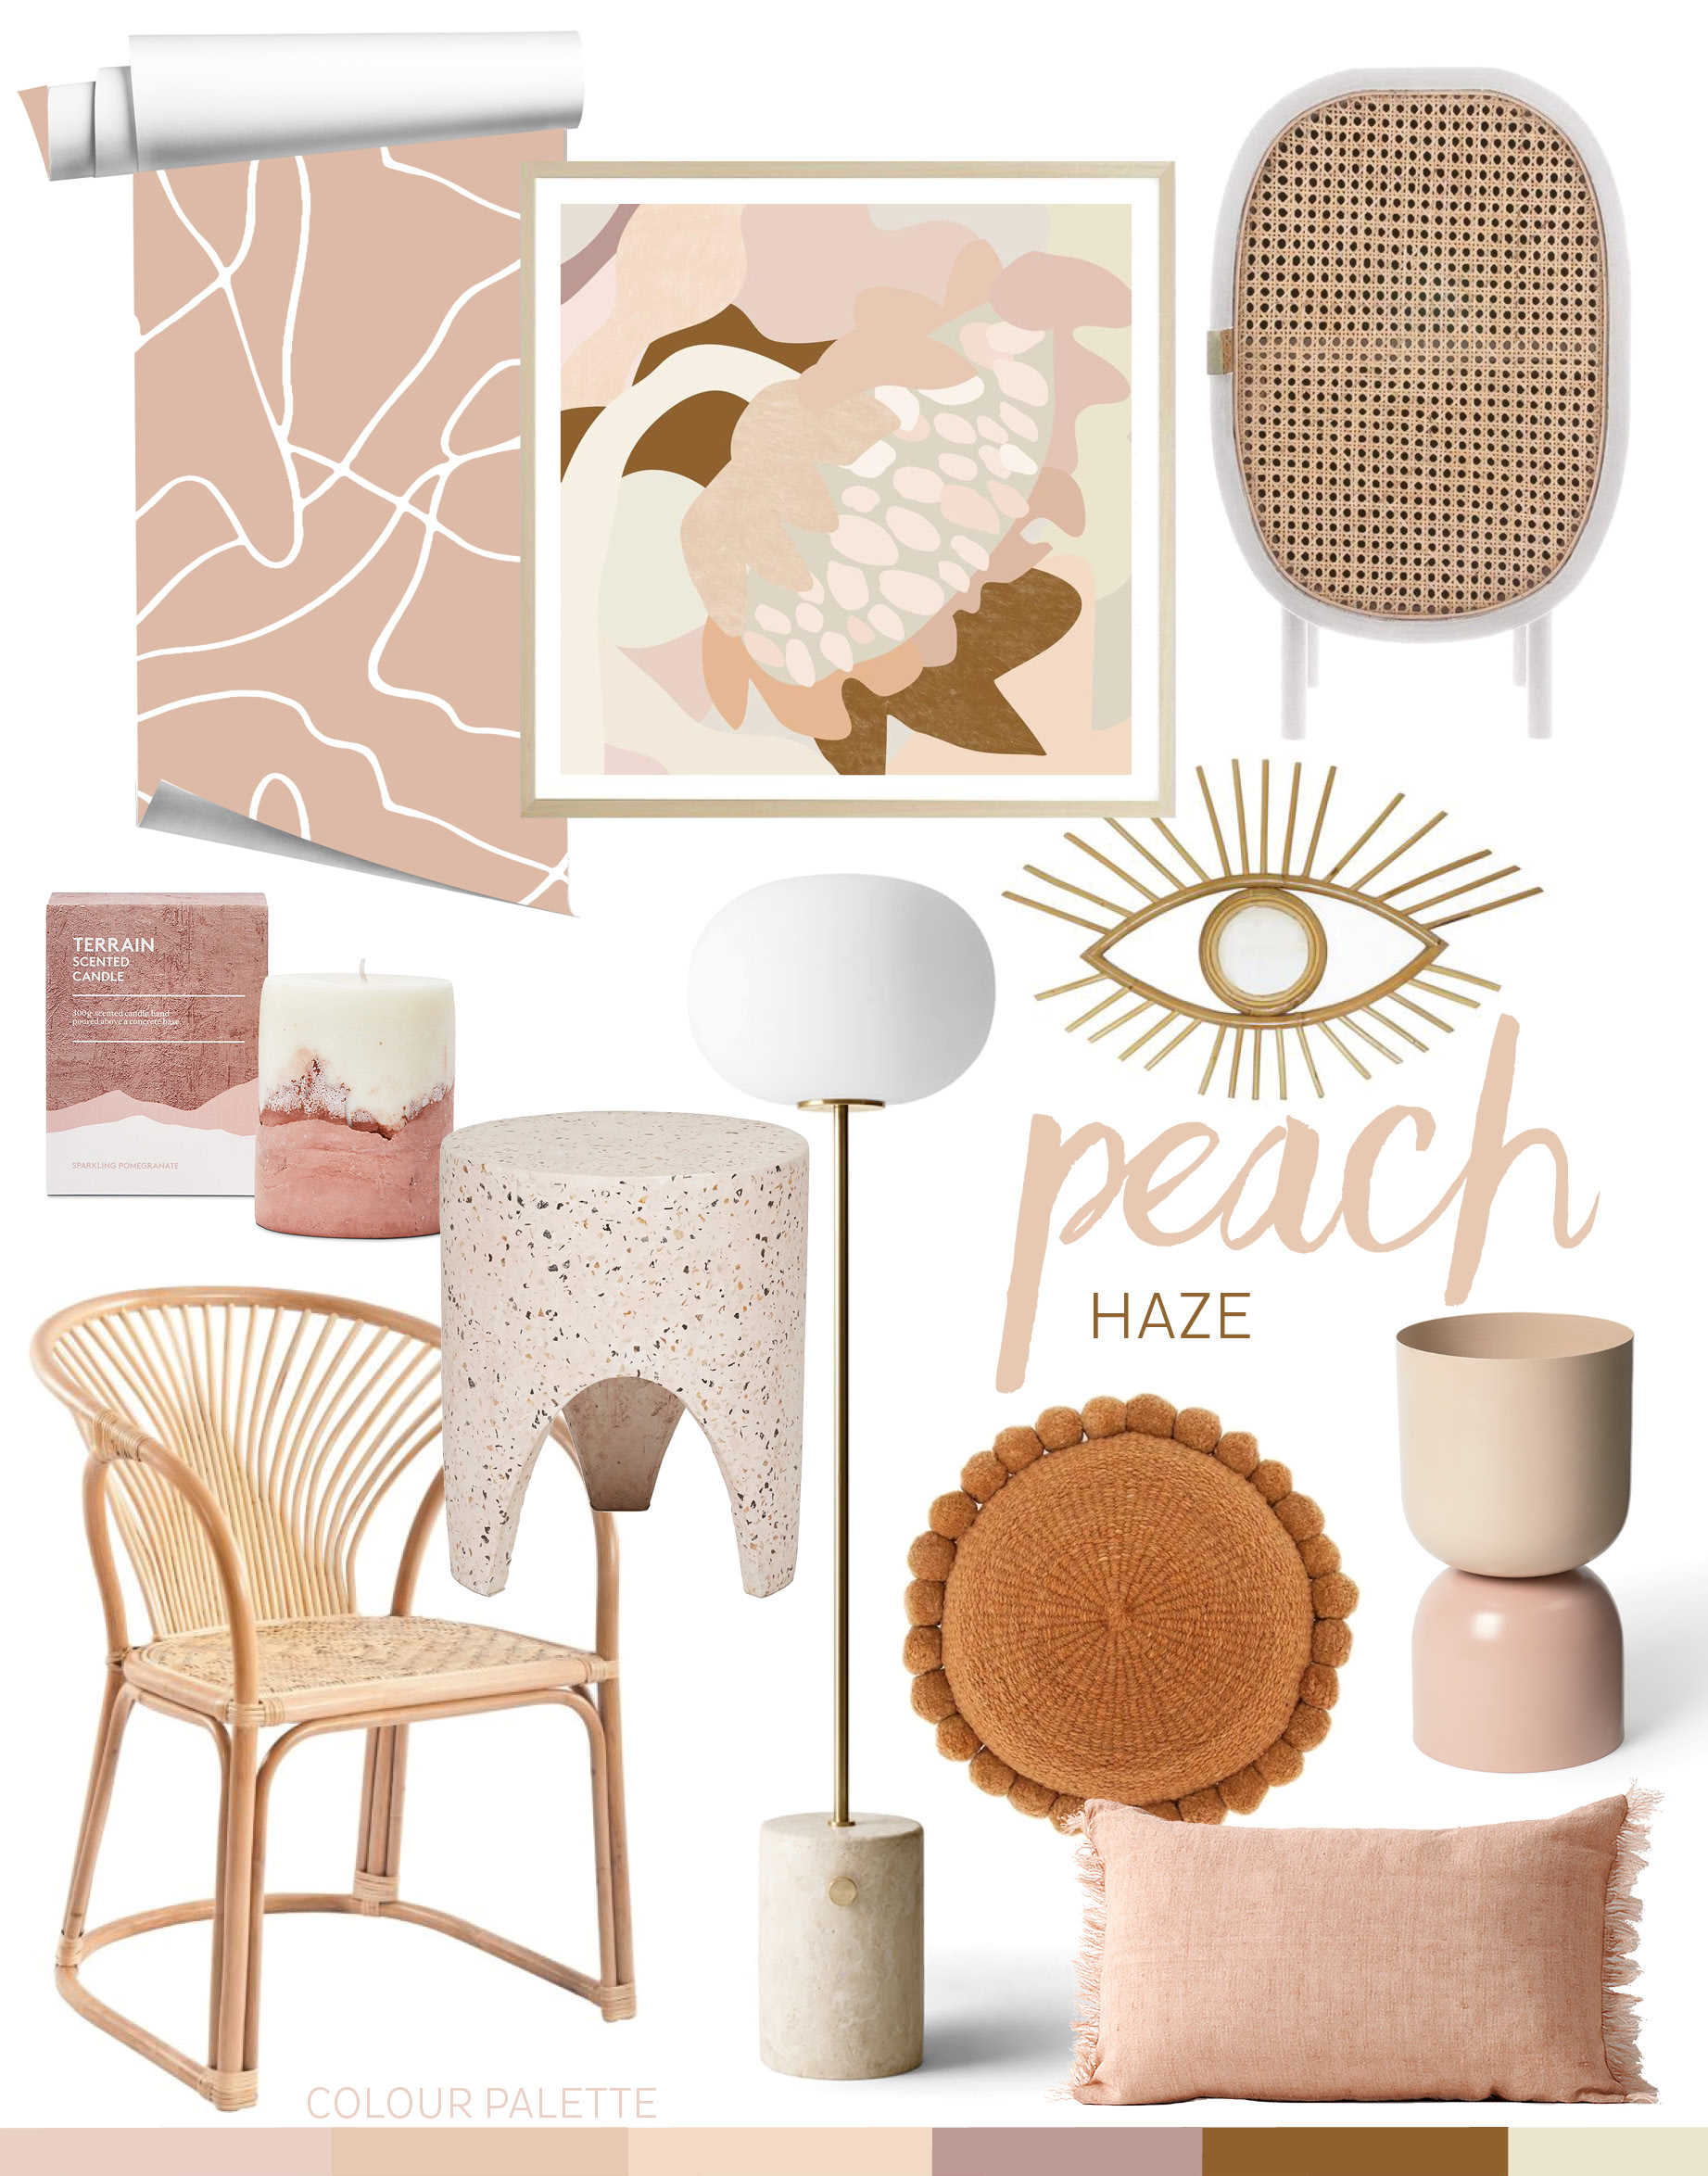 adore_blog_peach_haze_homewares_trend_product_kimmy_hogan_pastel_boho_decor_woven_cane_eye.jpg